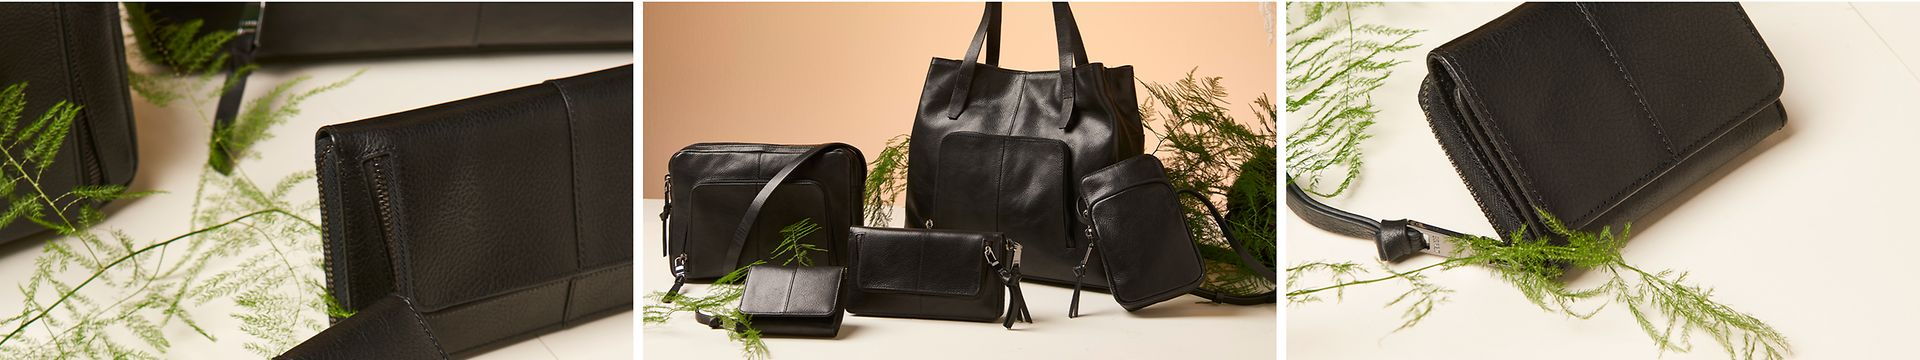 352021 - Tc Banner - Accessories - Bags - IMG